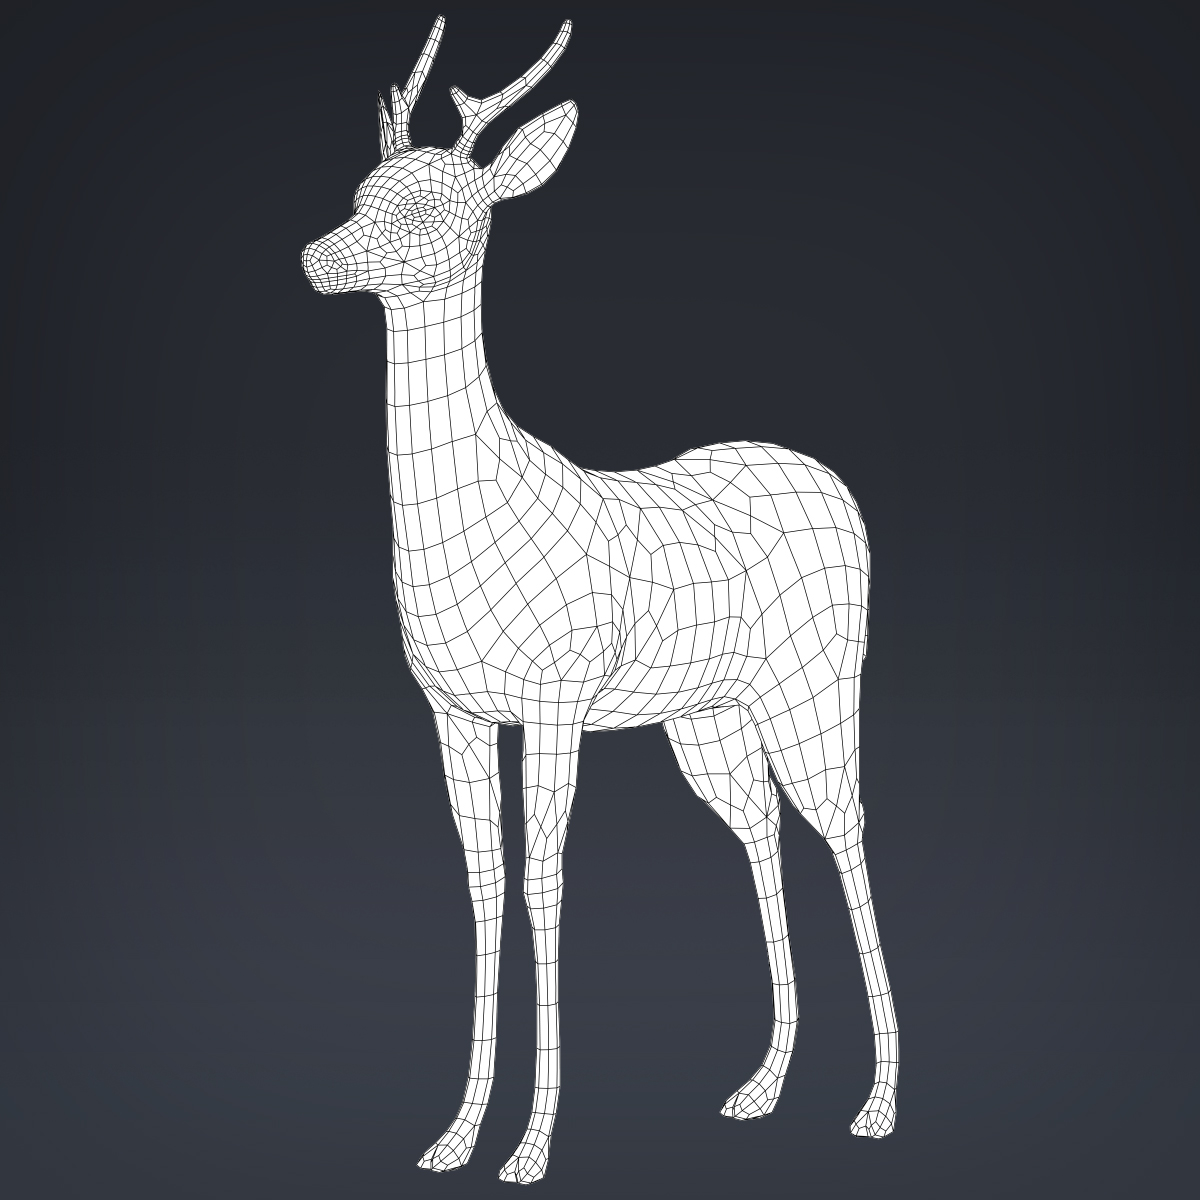 low poly realistic deer 3d model max fbx c4d ma mb obj 223717